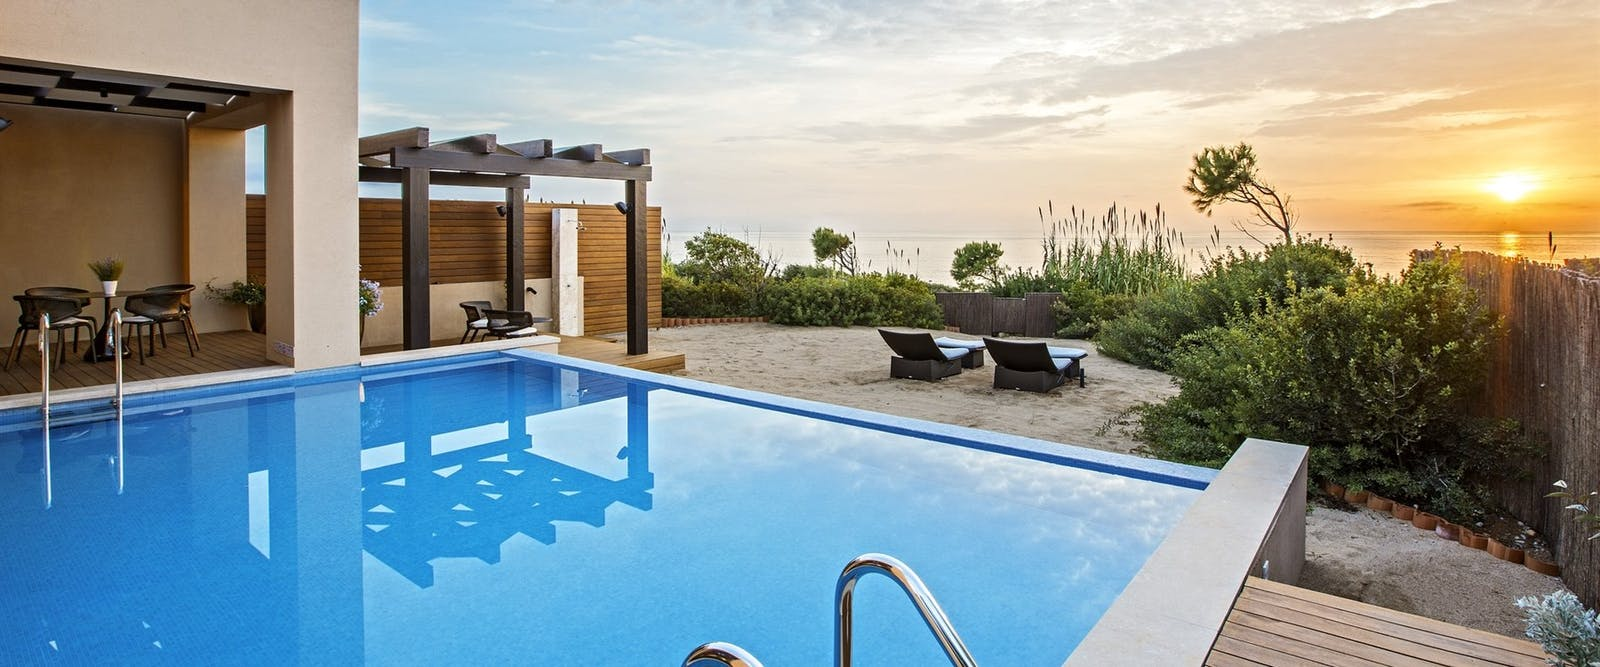 Master Infinity Villa Pool at The Romanos, a Luxury Collection Resort, Peloponnese, Greece